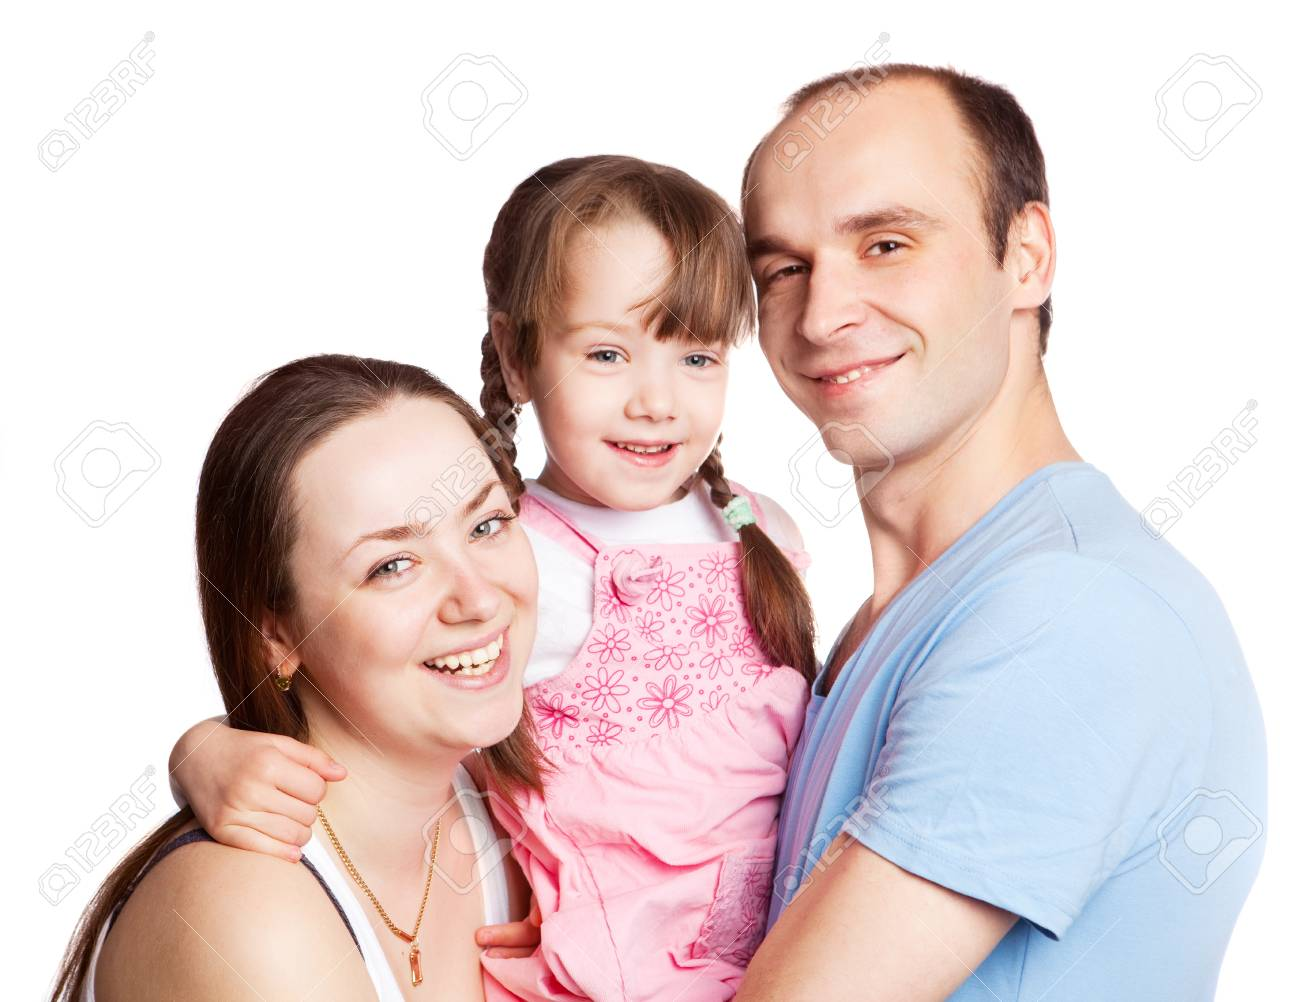 happy young family; mother, father and their daughter isolated against white background (focus on the woman) Stock Photo - 9757061